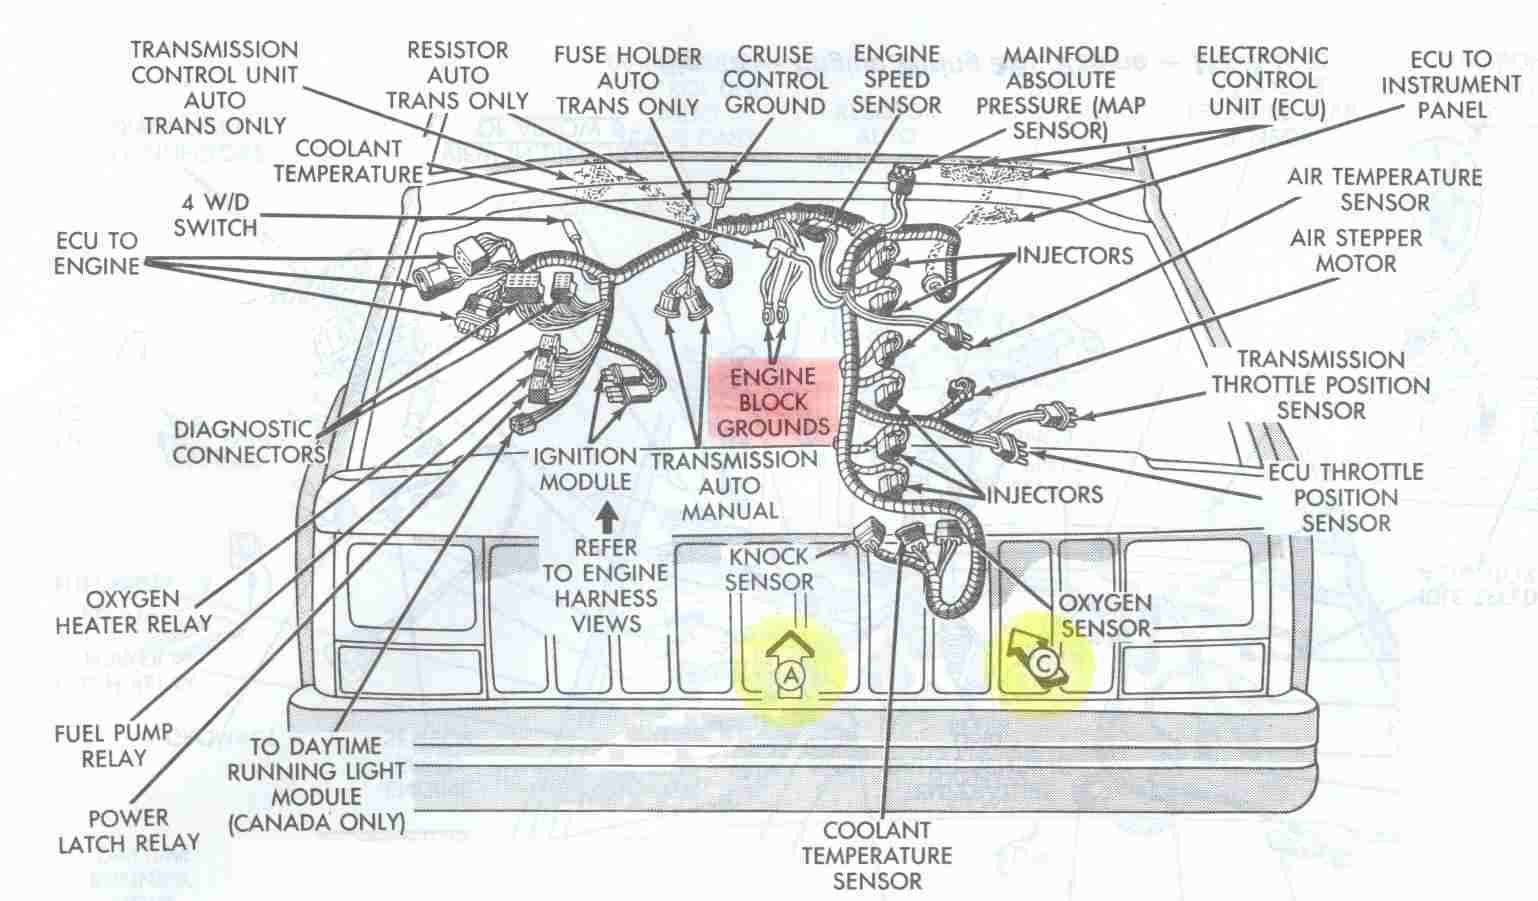 2006 Jeep Tj Engine Compartment Wiring Diagram Reinvent Your Taurus Schematics 740 Bay Schematic Showing Major Electrical Ground Points For 4 0l Rh Pinterest Com 1997